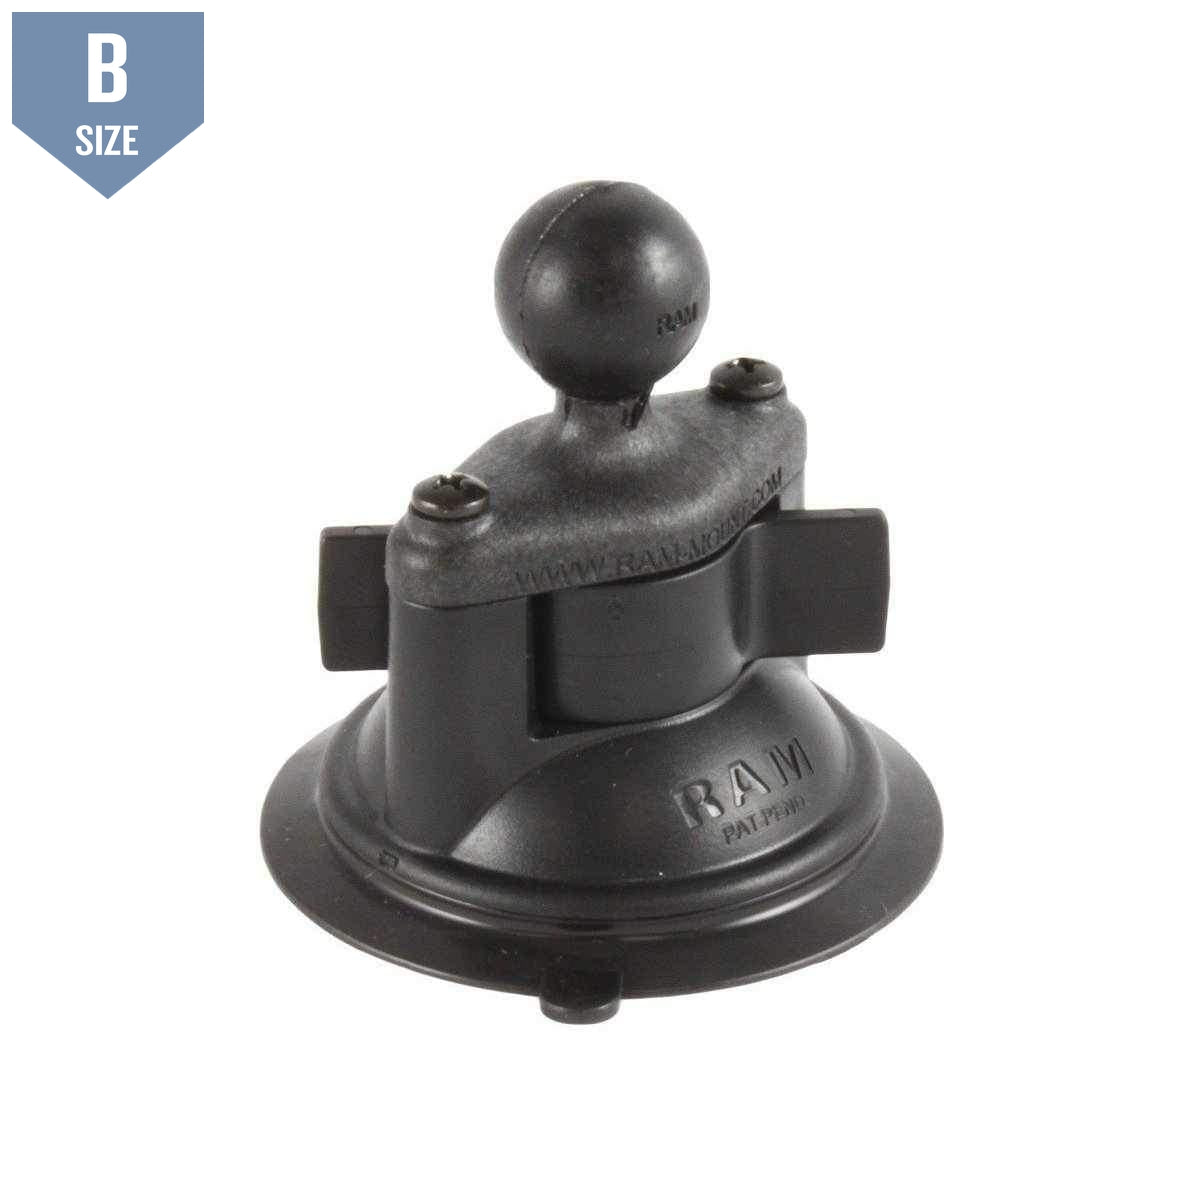 "RAM Composite Suction Cup Base w 1"" Ball (RAP-B-224-1U) - Modest Mounts"